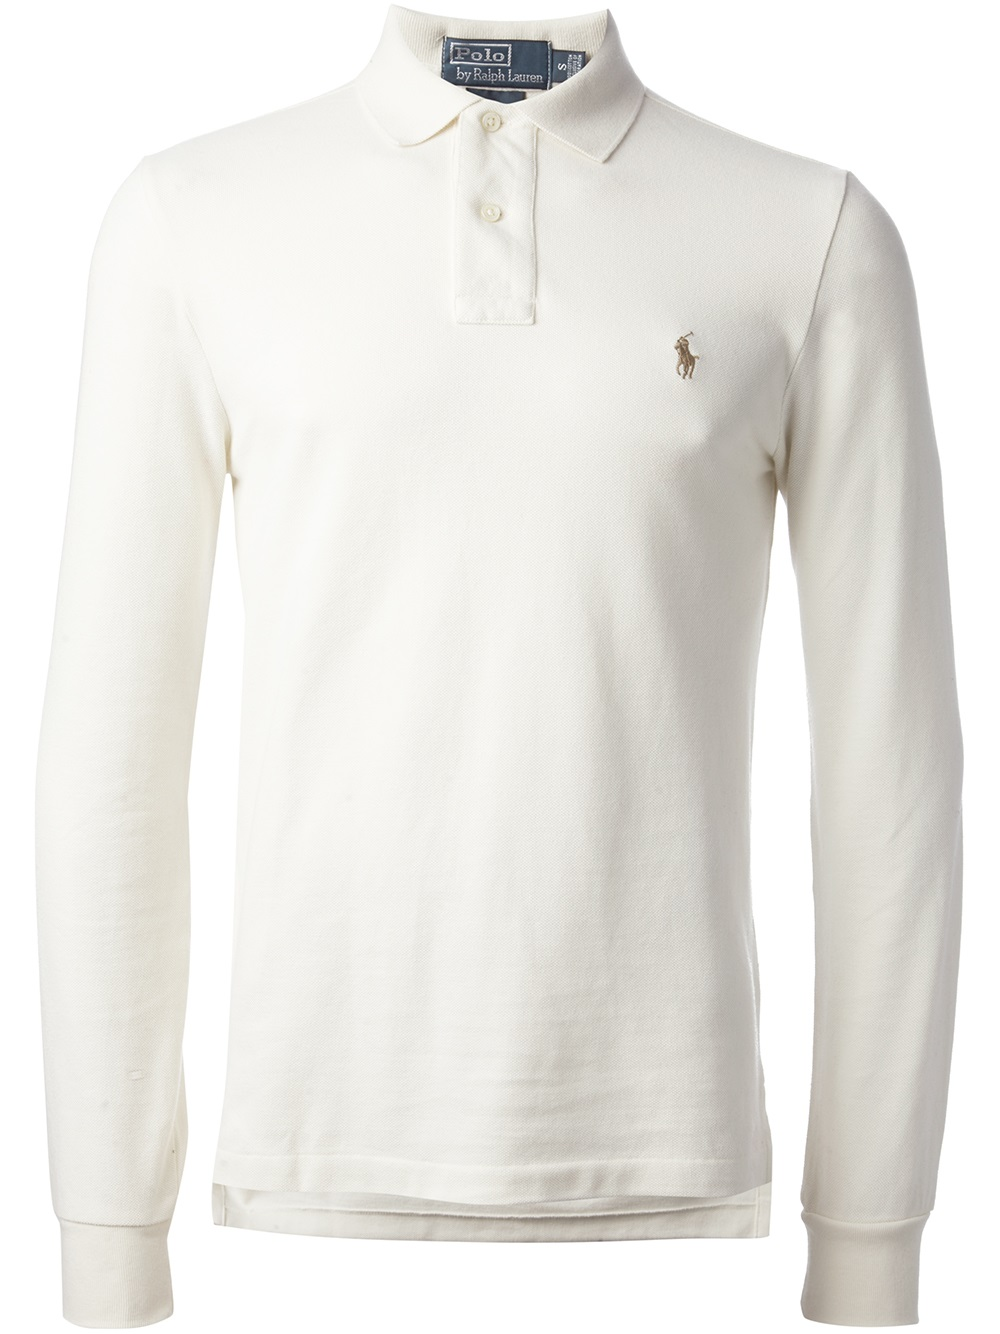 Lyst polo ralph lauren long sleeve polo shirt in white for Polo shirts long sleeve men